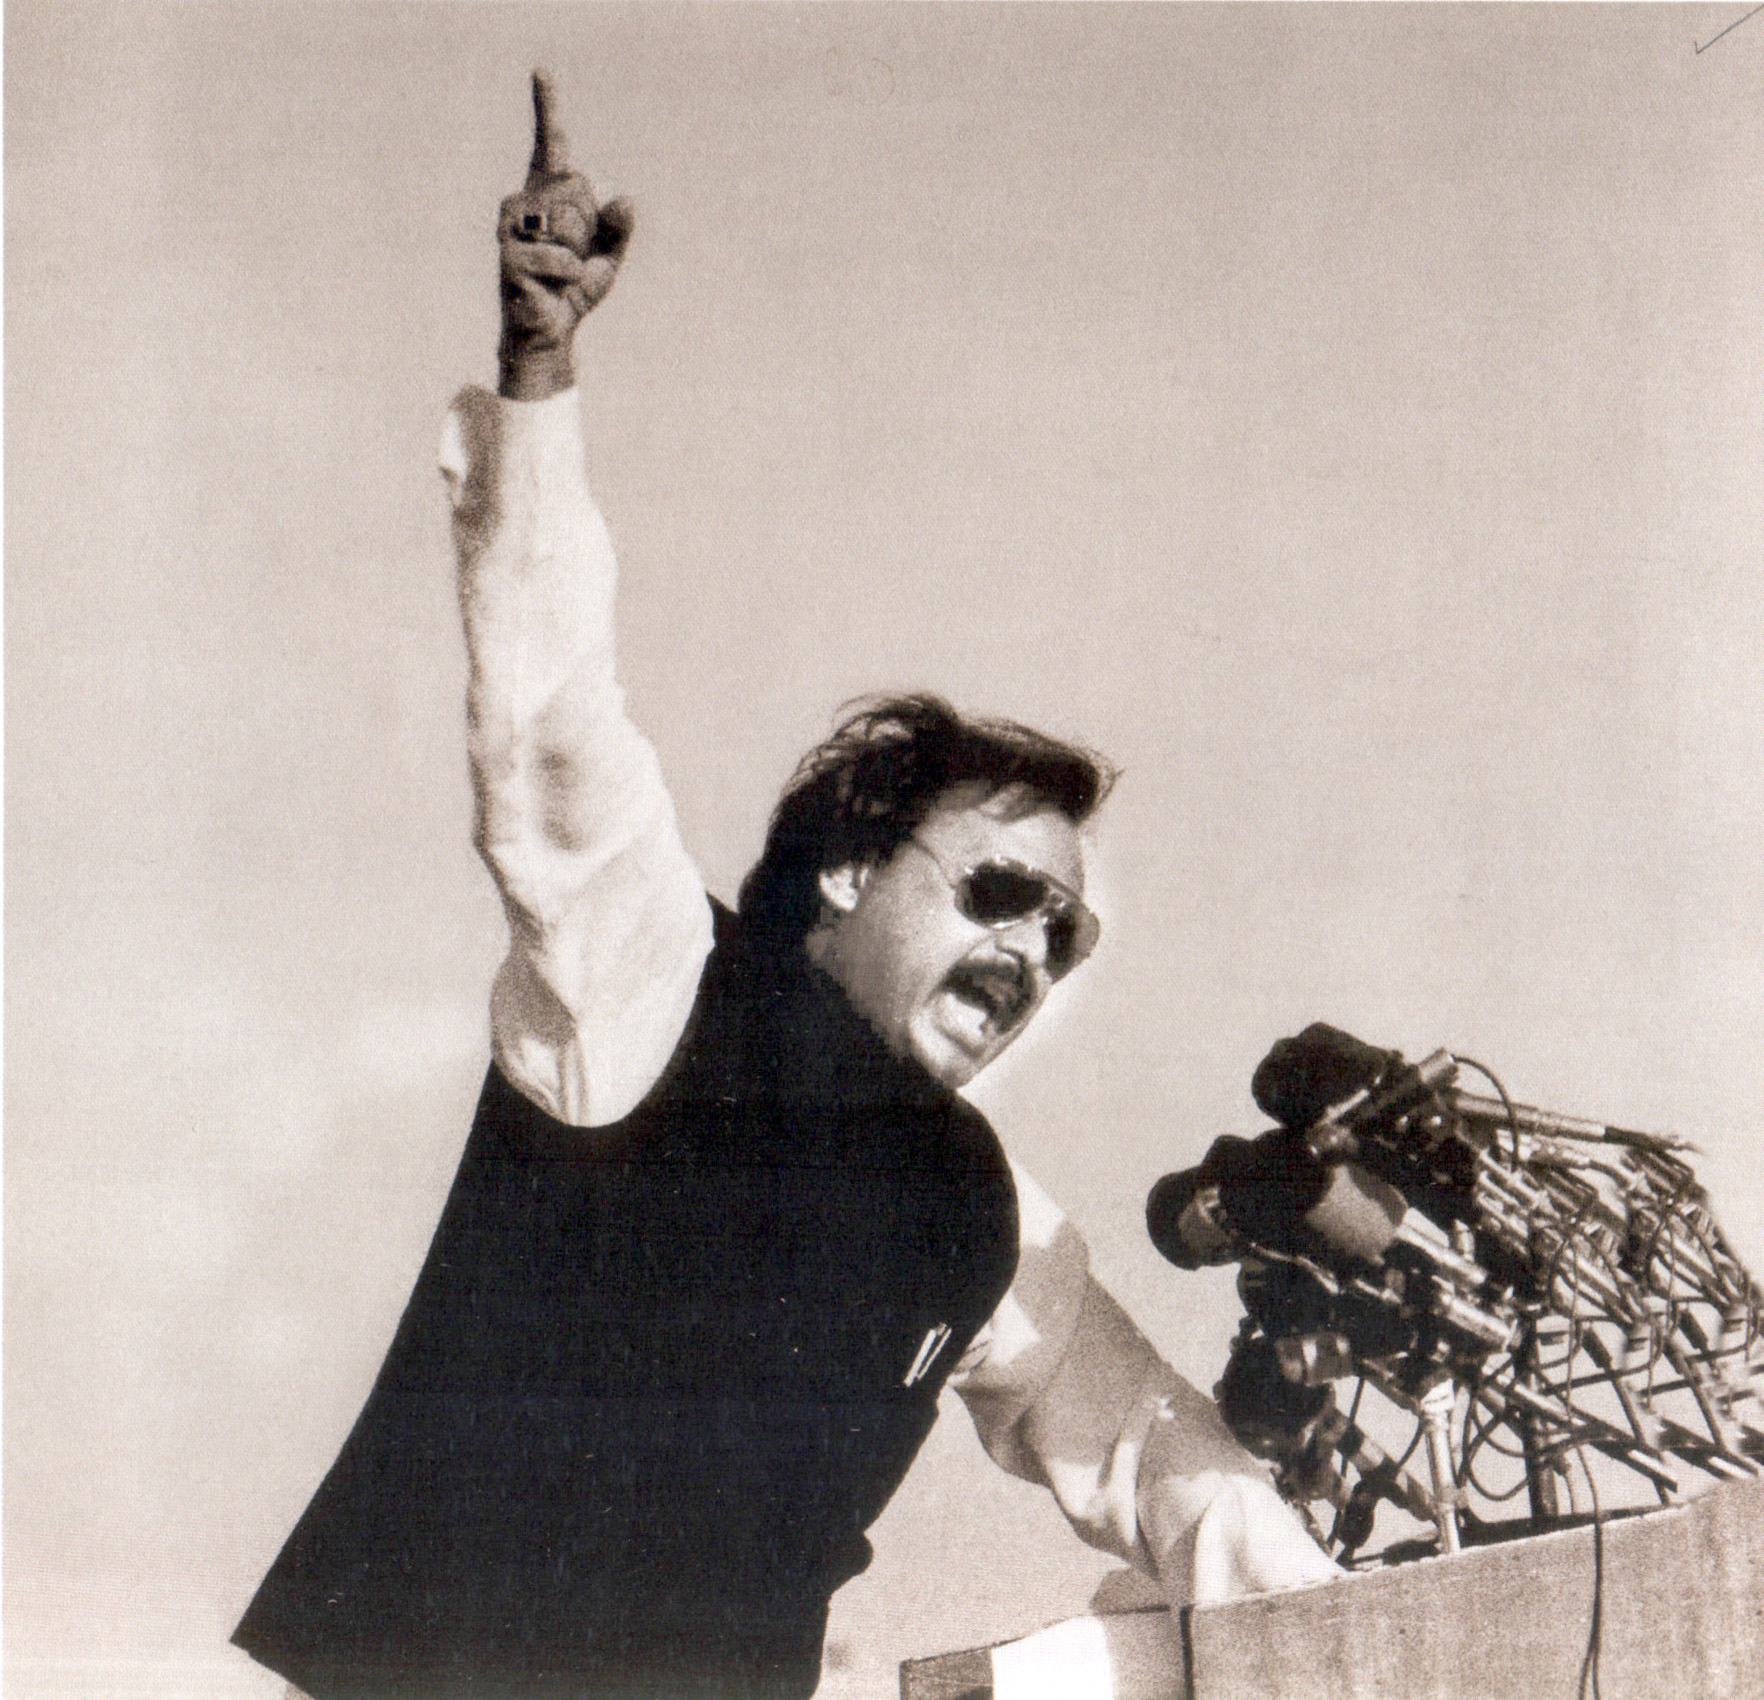 Altaf Hussain addressing a rally in Karachi in 1987.